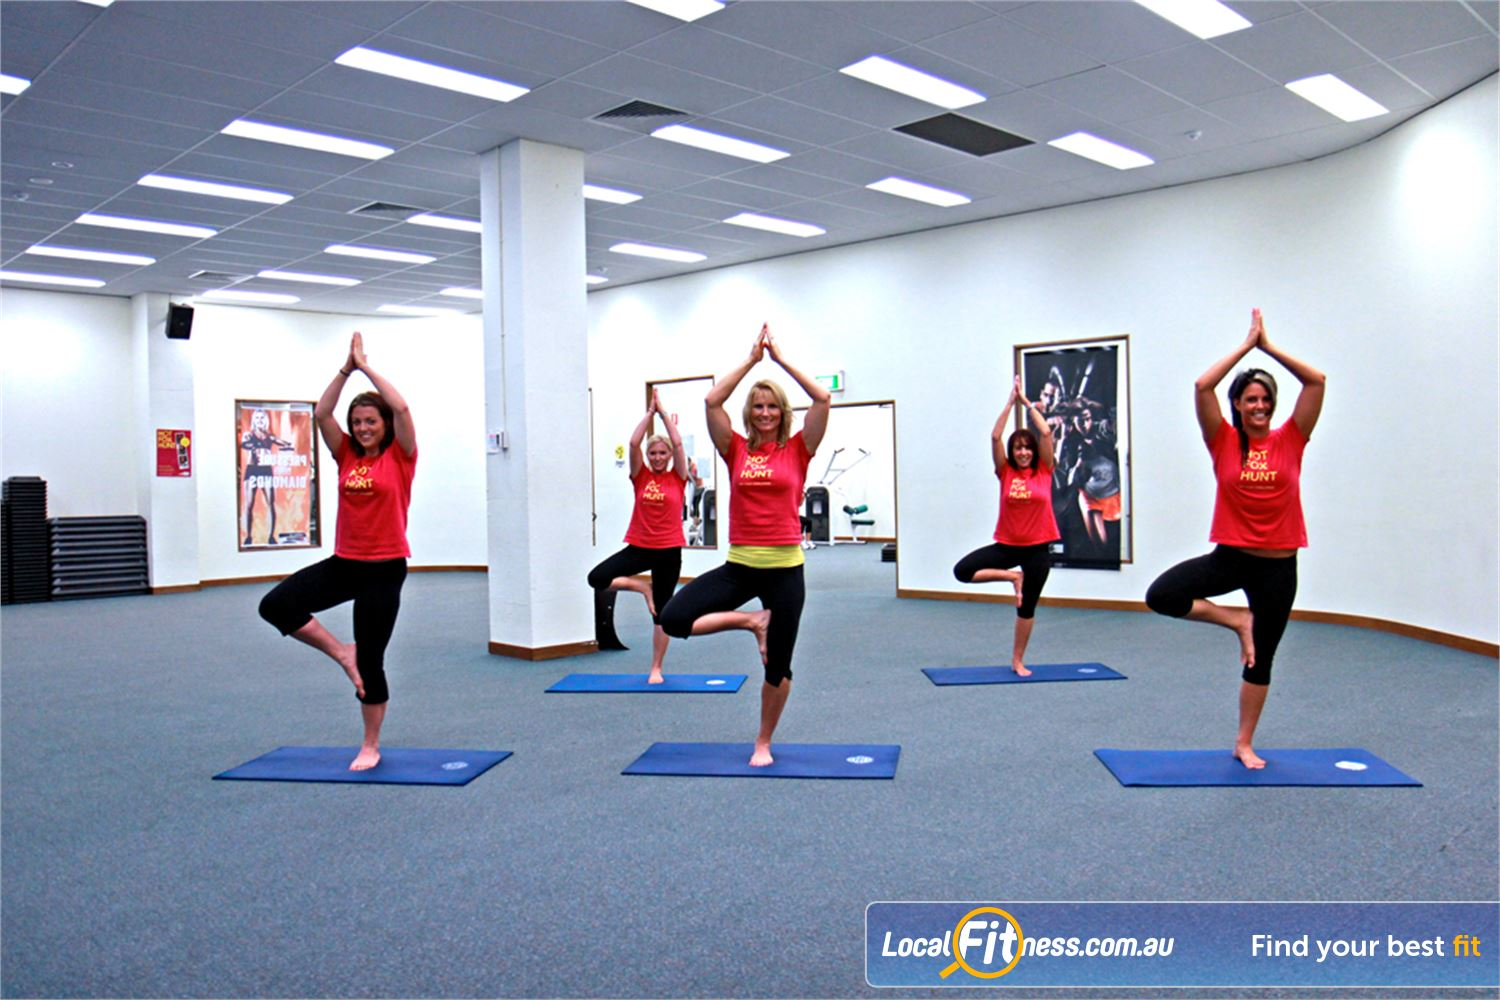 Fernwood Fitness Near South Kingsville Enjoy classes including Yarraville Yoga and Pilates.